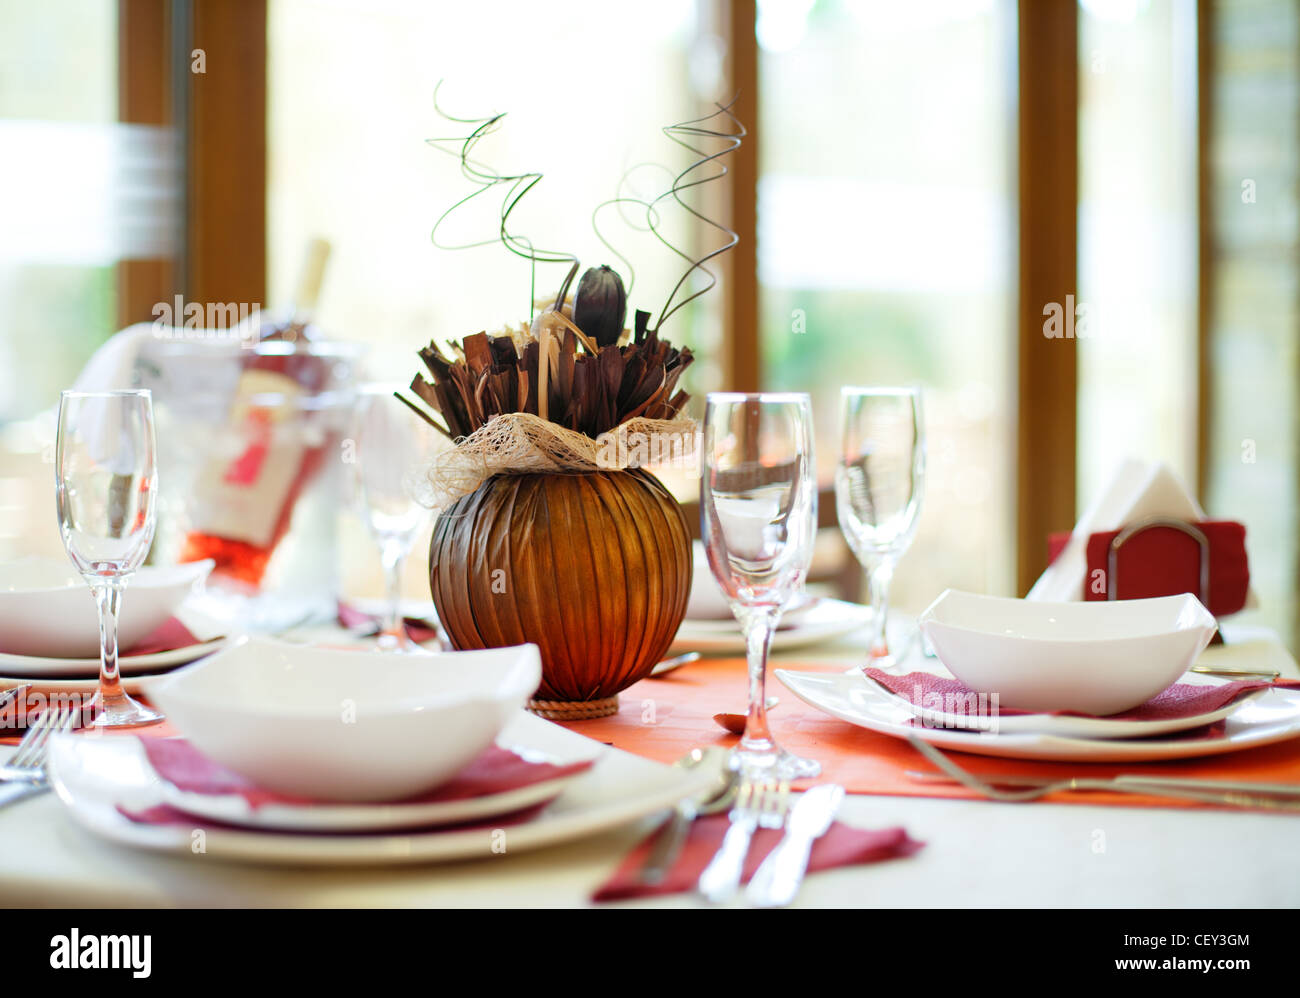 Table setup for official dinner - Stock Image